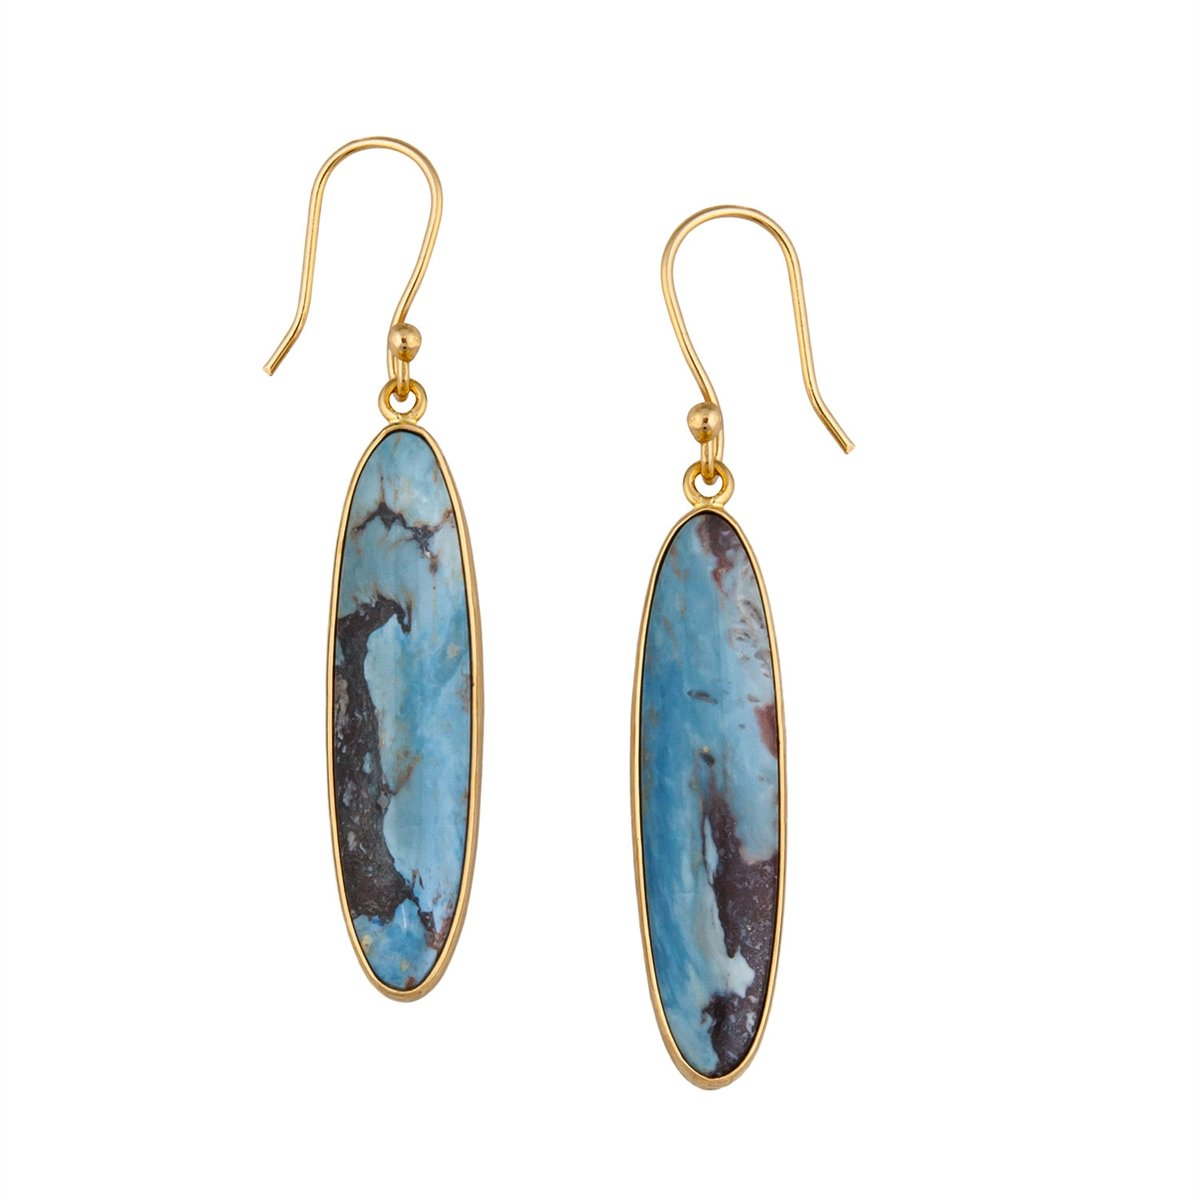 Alchemia Aztec Lapis Earrings | Charles Albert Jewelry